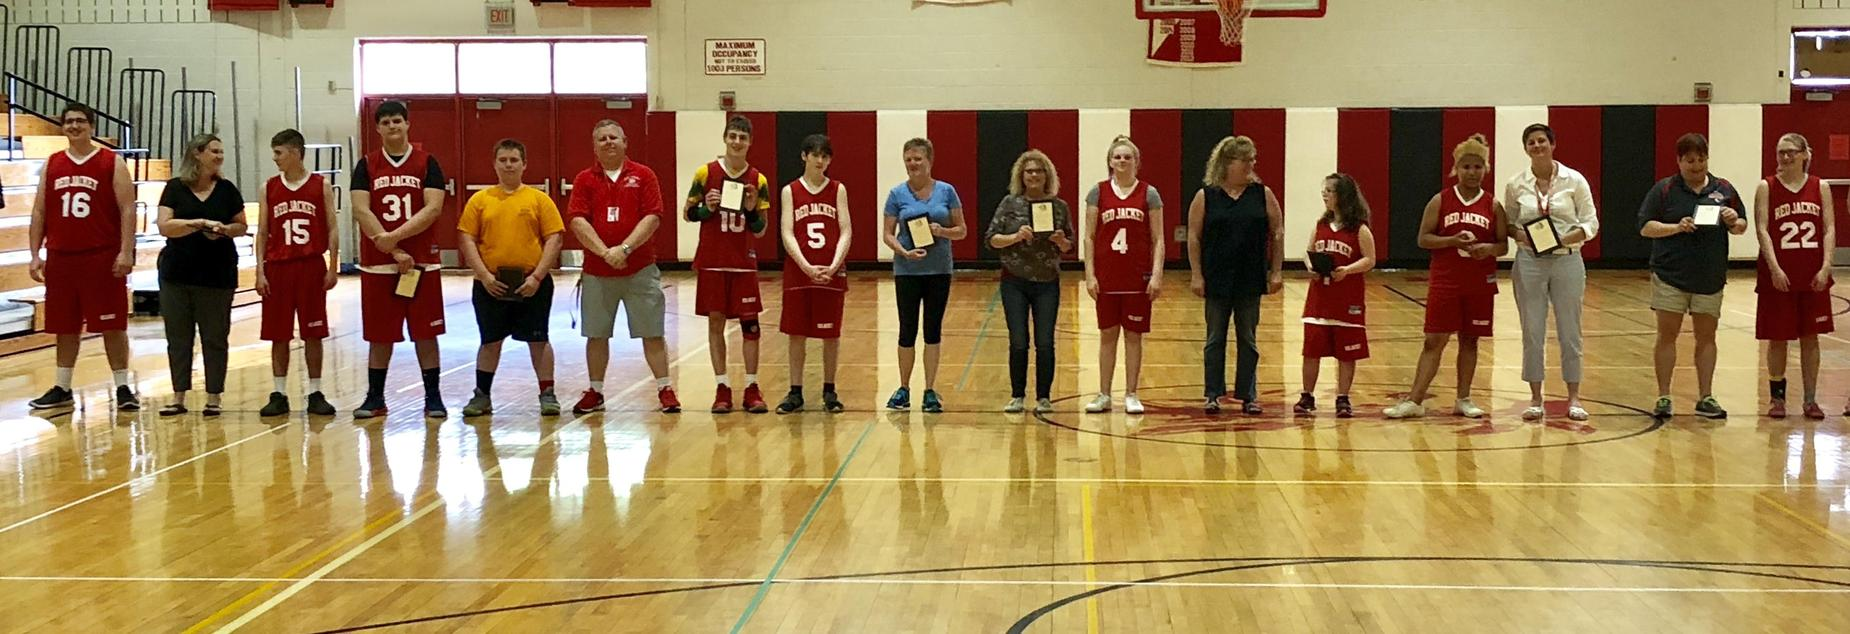 Unified Basketball Team honoring their biggest supporters